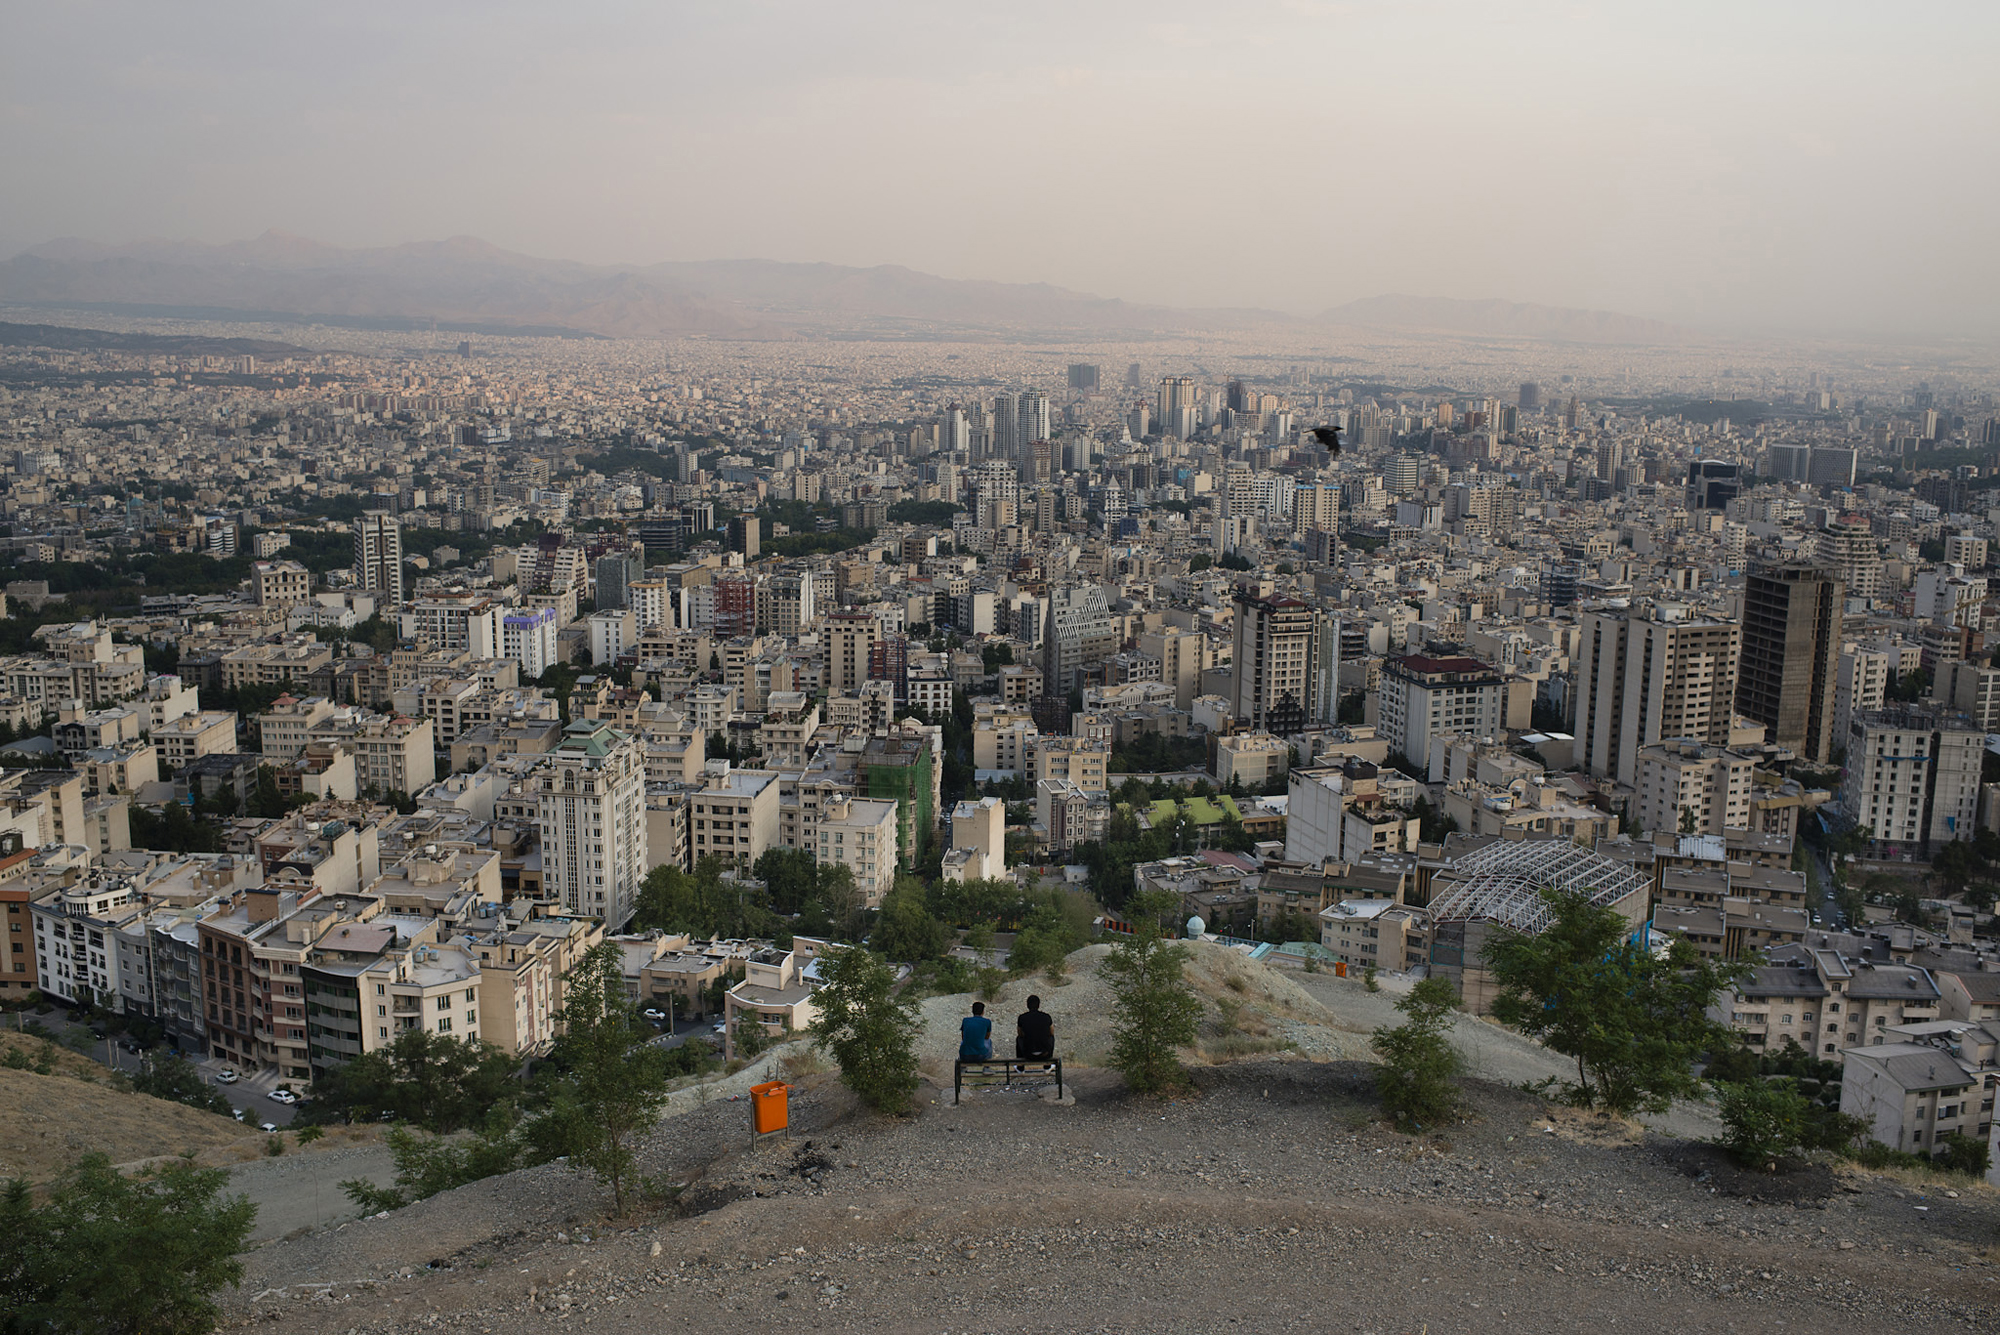 An overview of Tehran on July 7, 2014